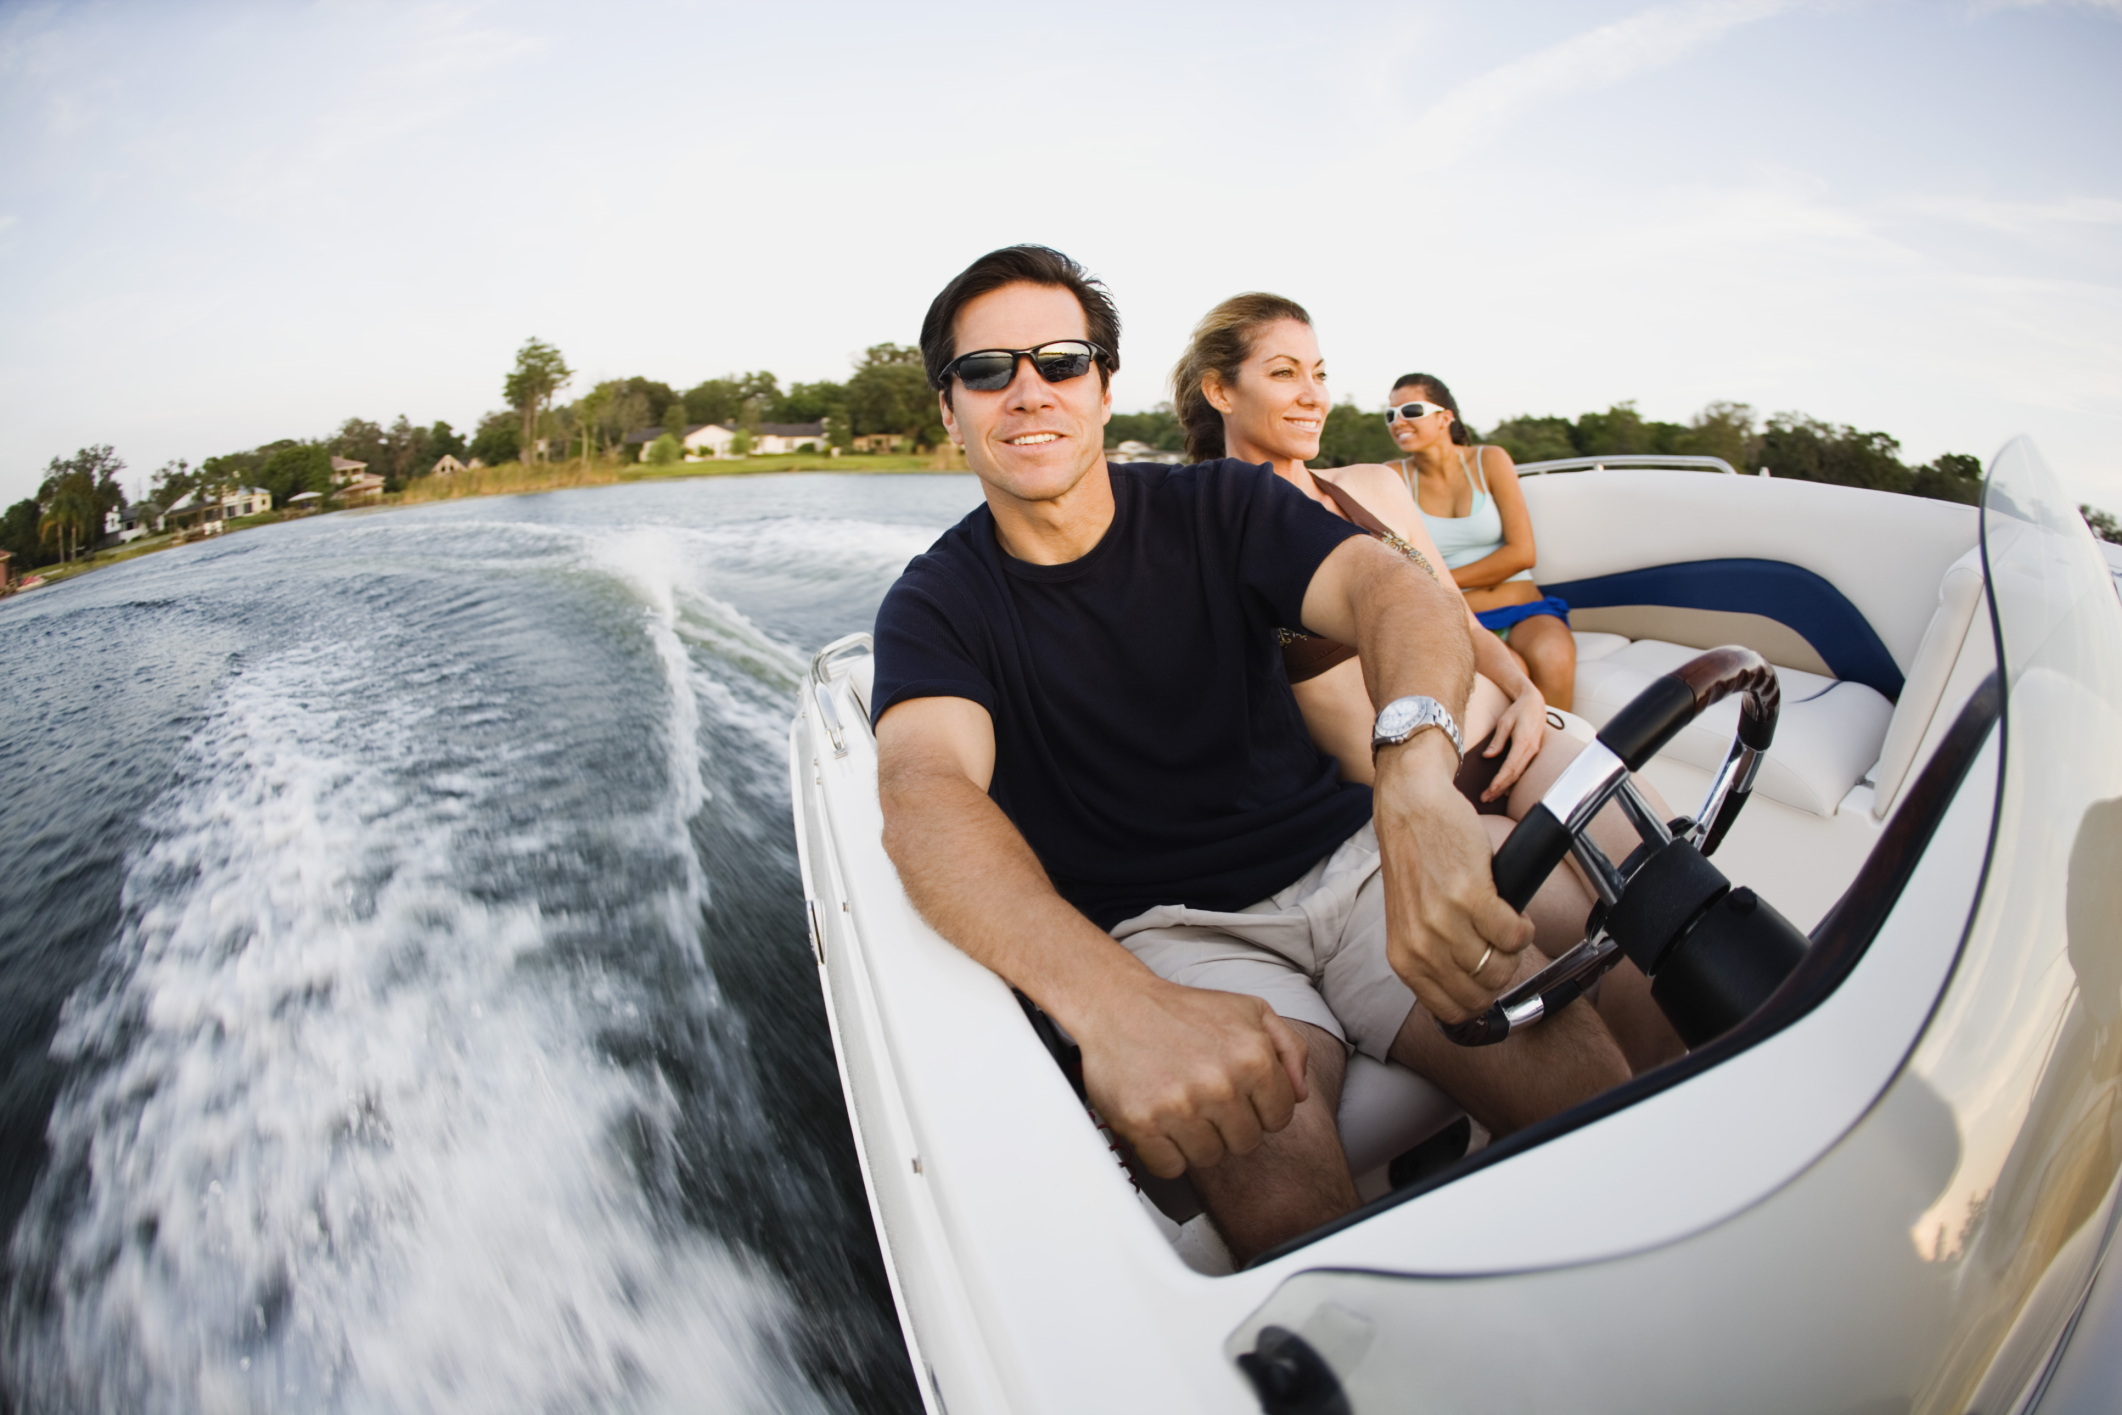 image of man and women on boat